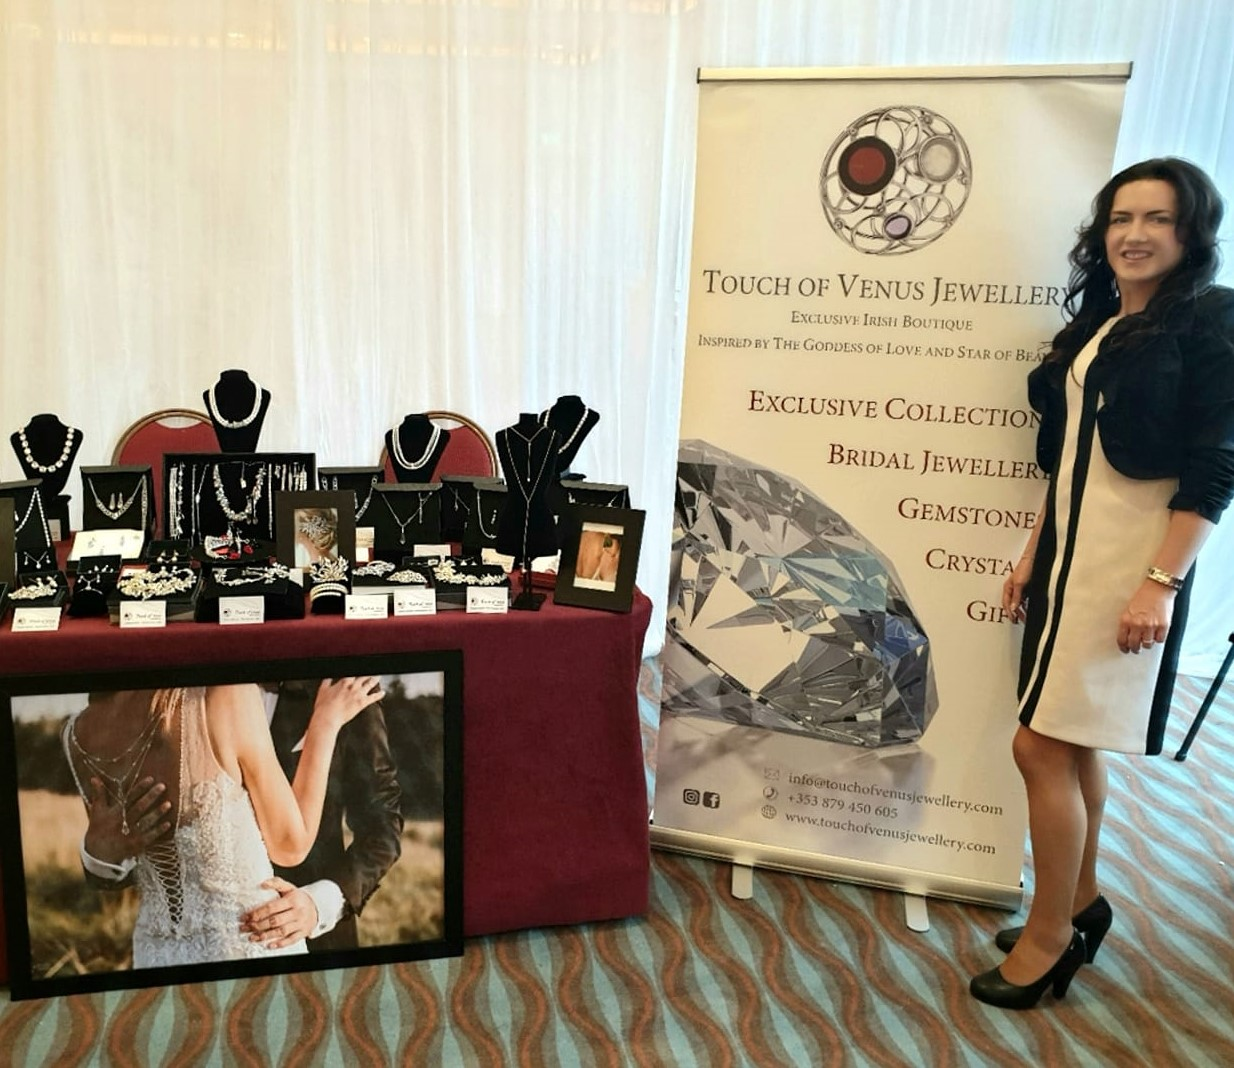 Woman standing at a sign for Touch of Venus jewellery at wedding fair